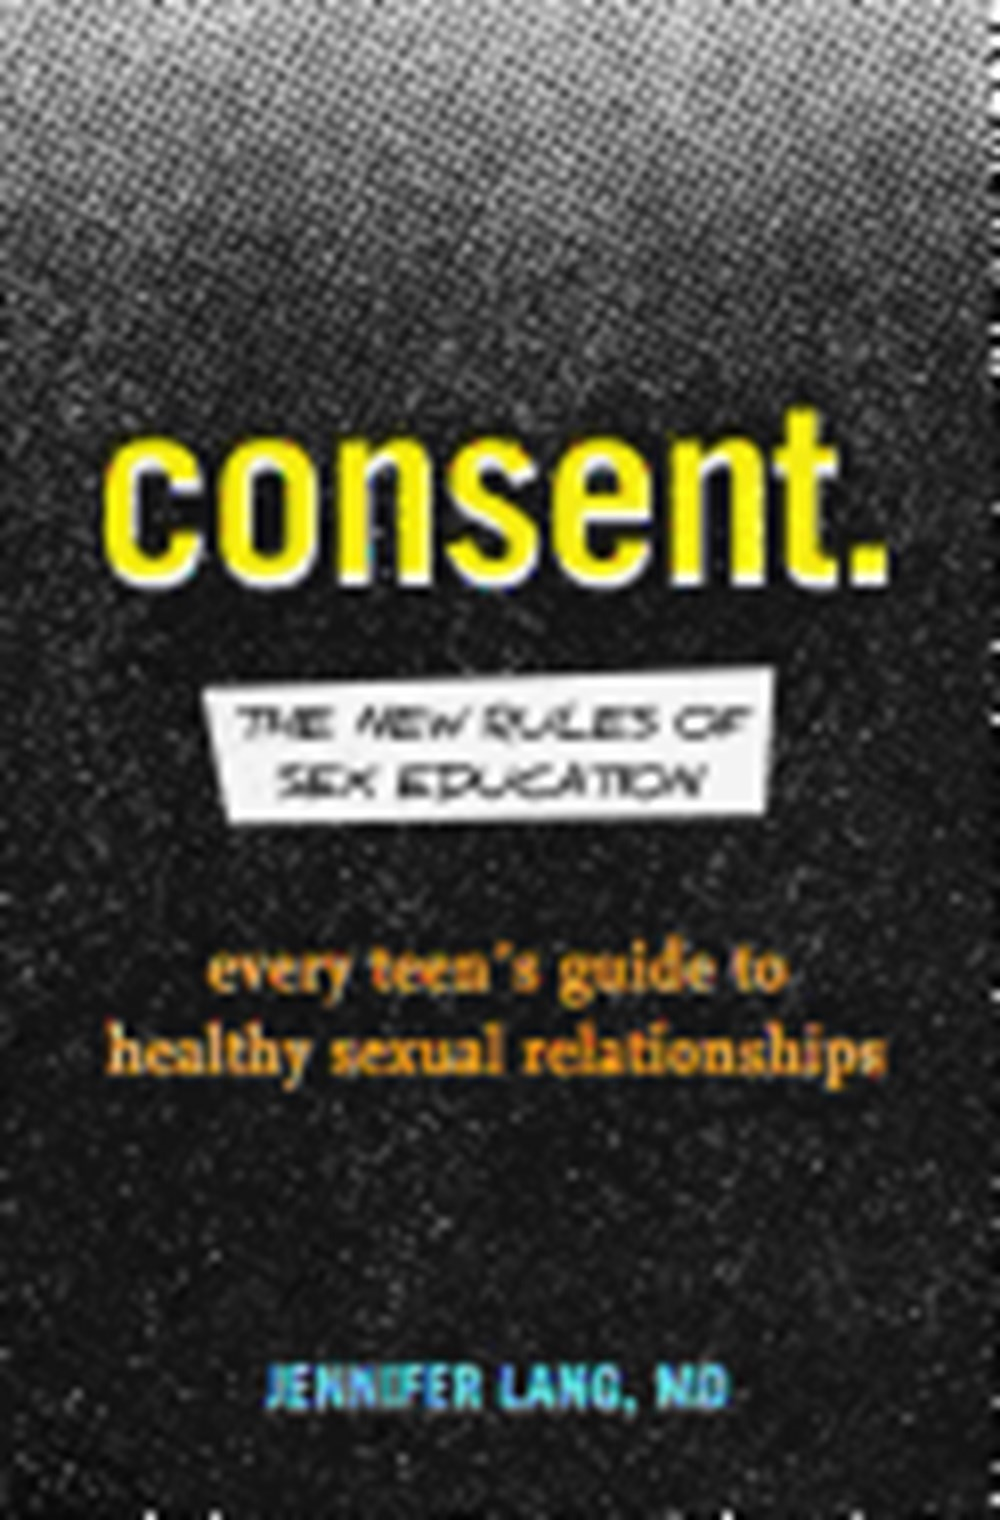 Consent The New Rules of Sex Education: Every Teen's Guide to Healthy Sexual Relationships